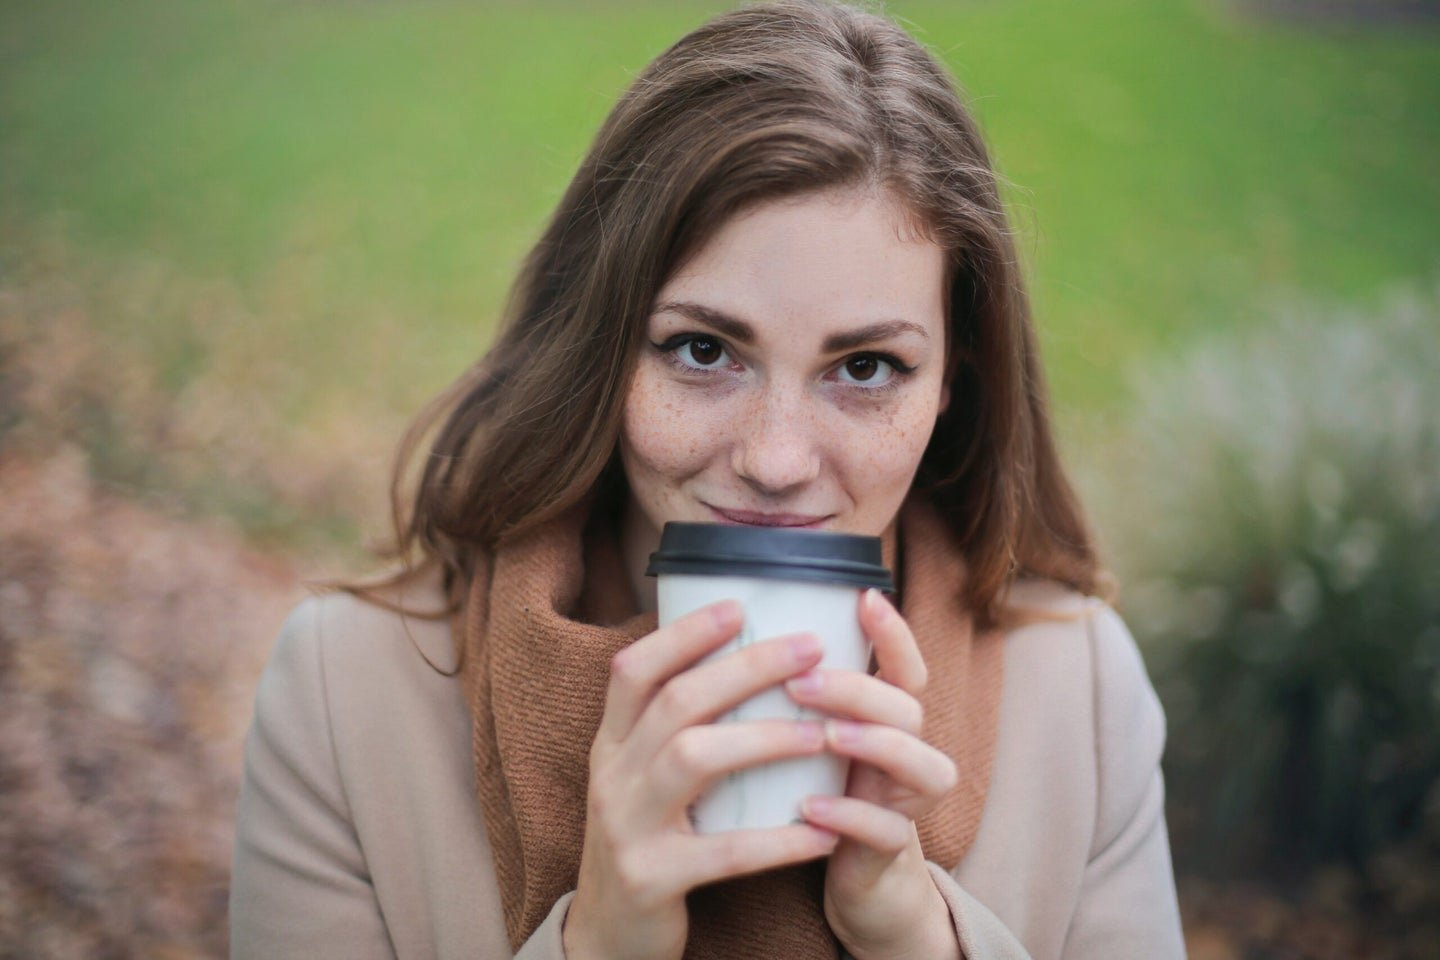 Does coffee make you poop, or is that just me?